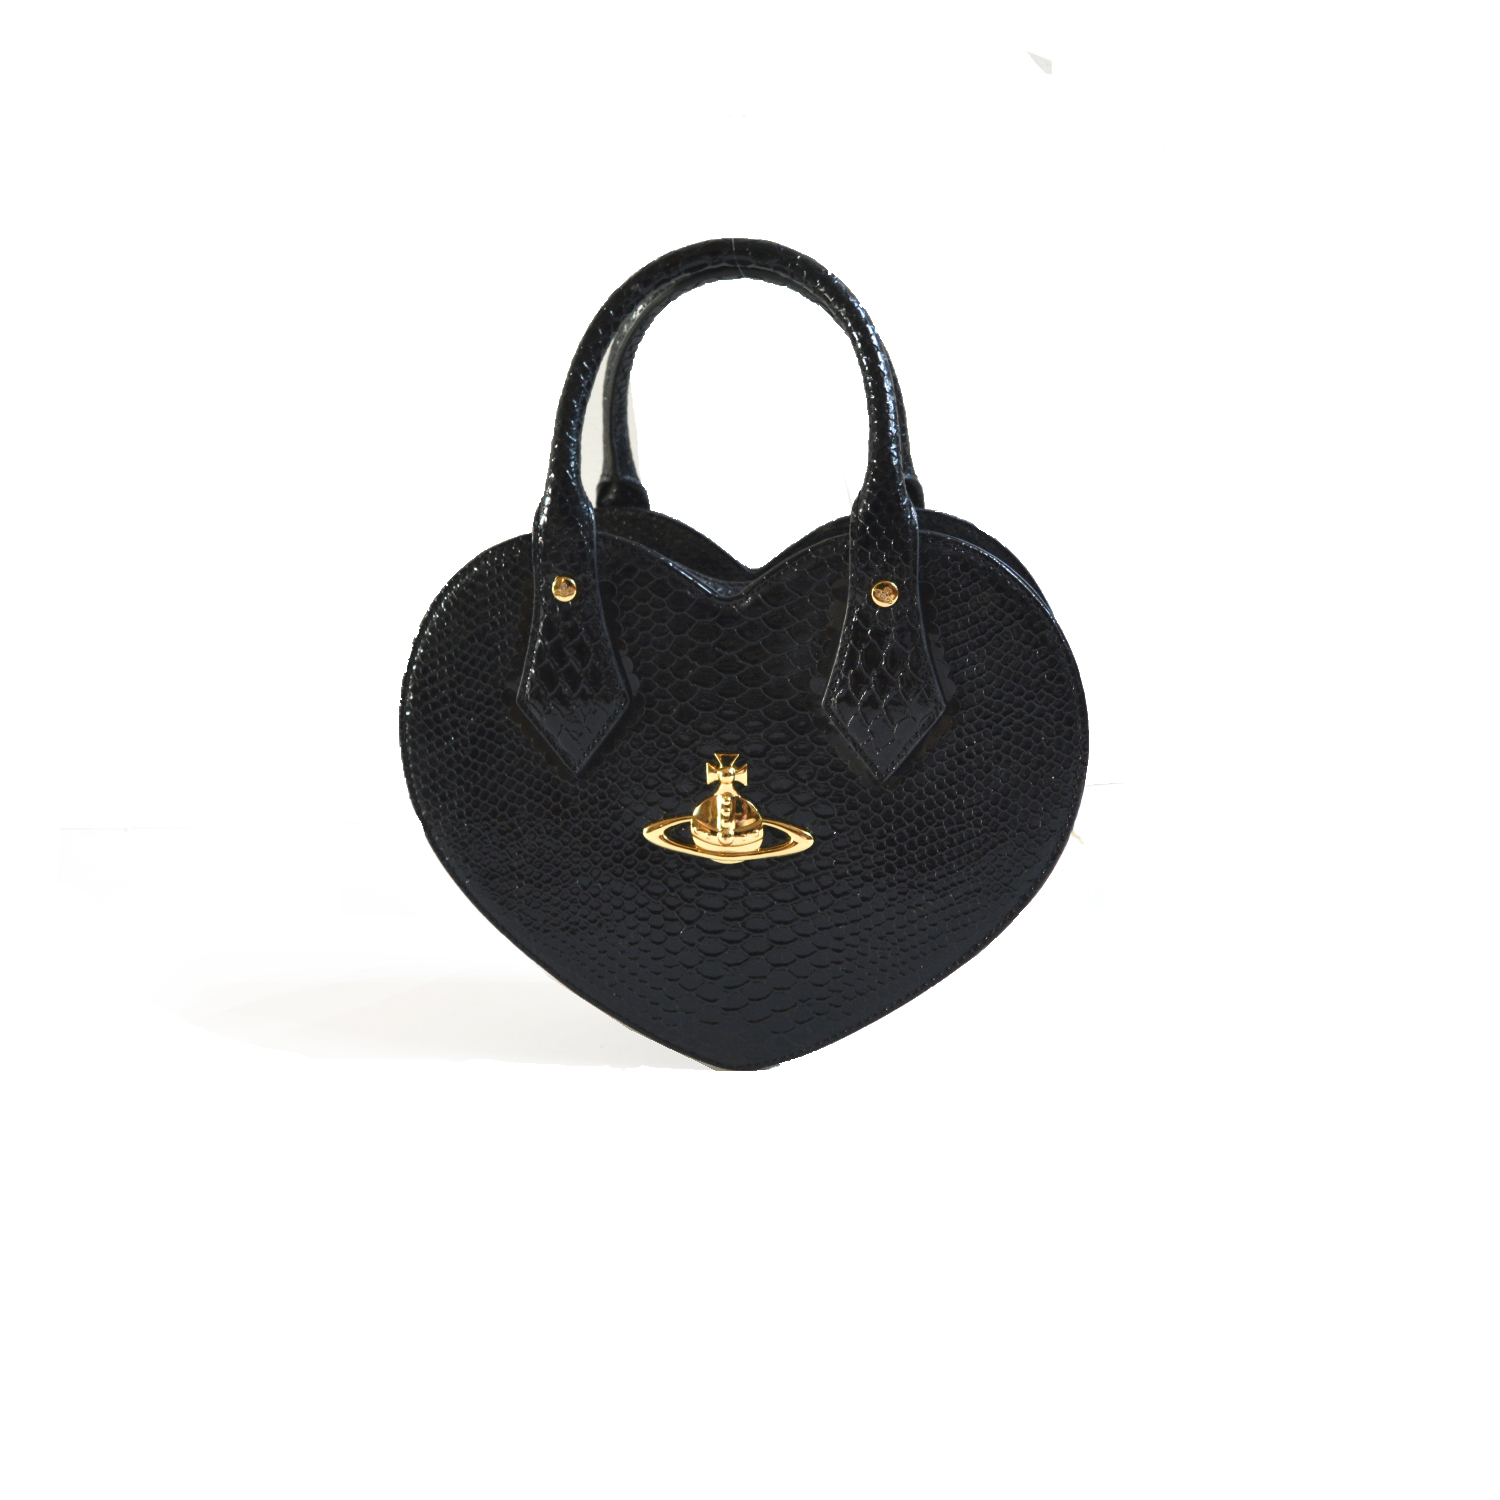 Vivienne Westwood Chancery Heart Bag in Black and Gold   NITRYL